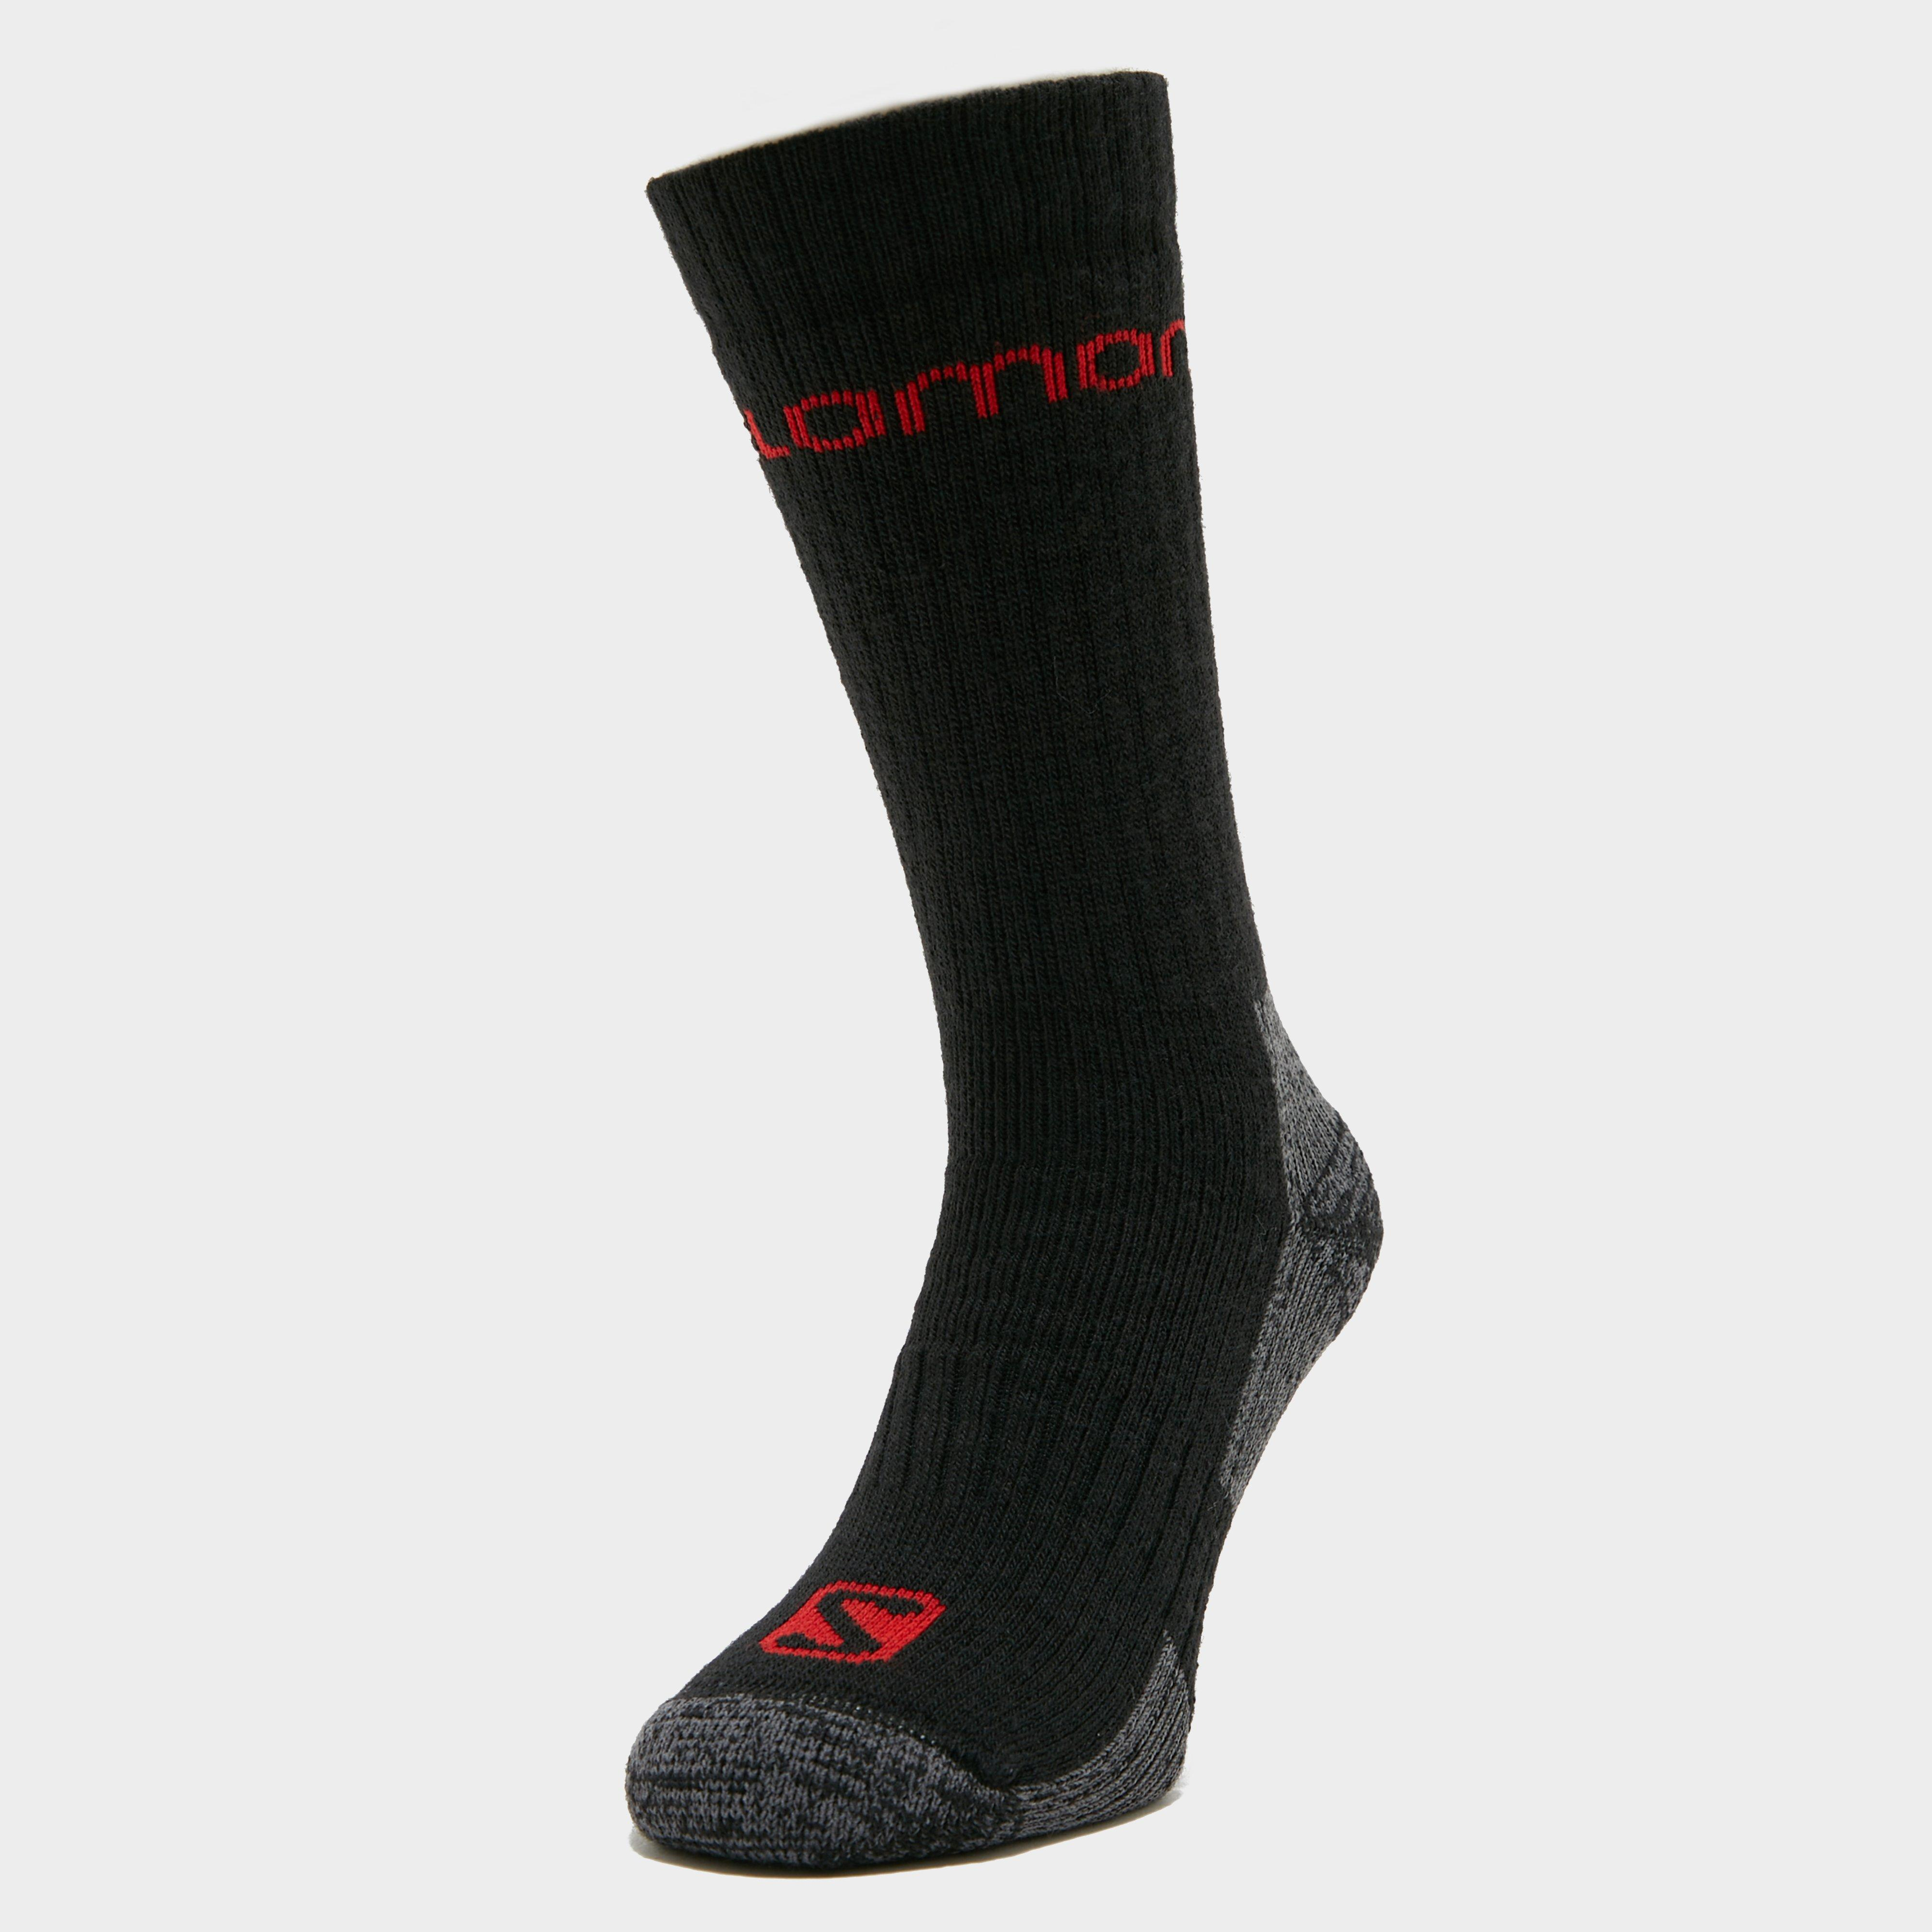 Salomon Socks Salomon Socks Mens Merino Socks 2 Pack - Black, Black